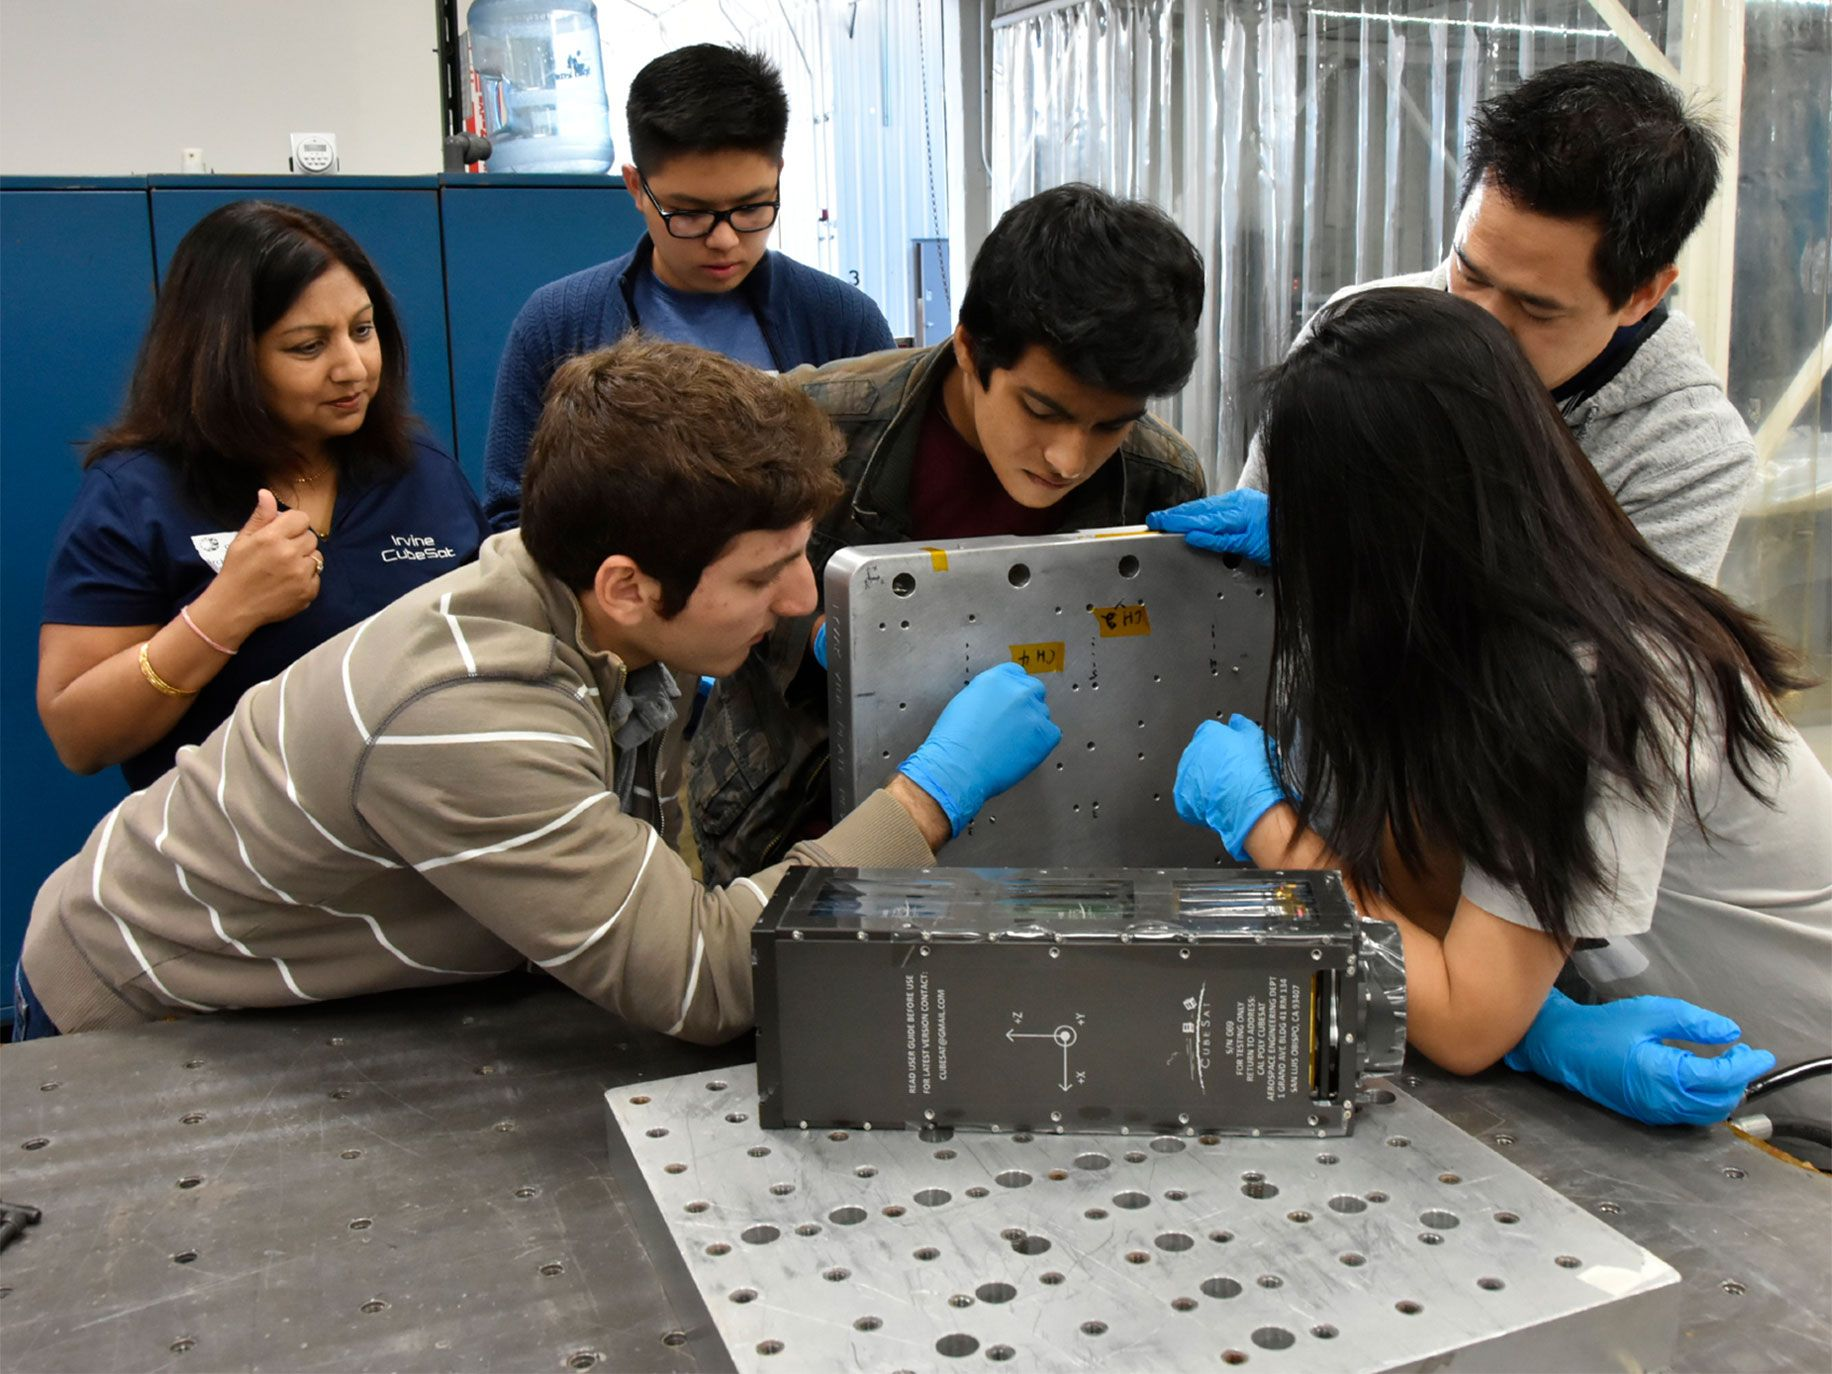 High school students in Irvine, California, designed, built, and oversaw the successful deployment of two cube satellites in late 2018.